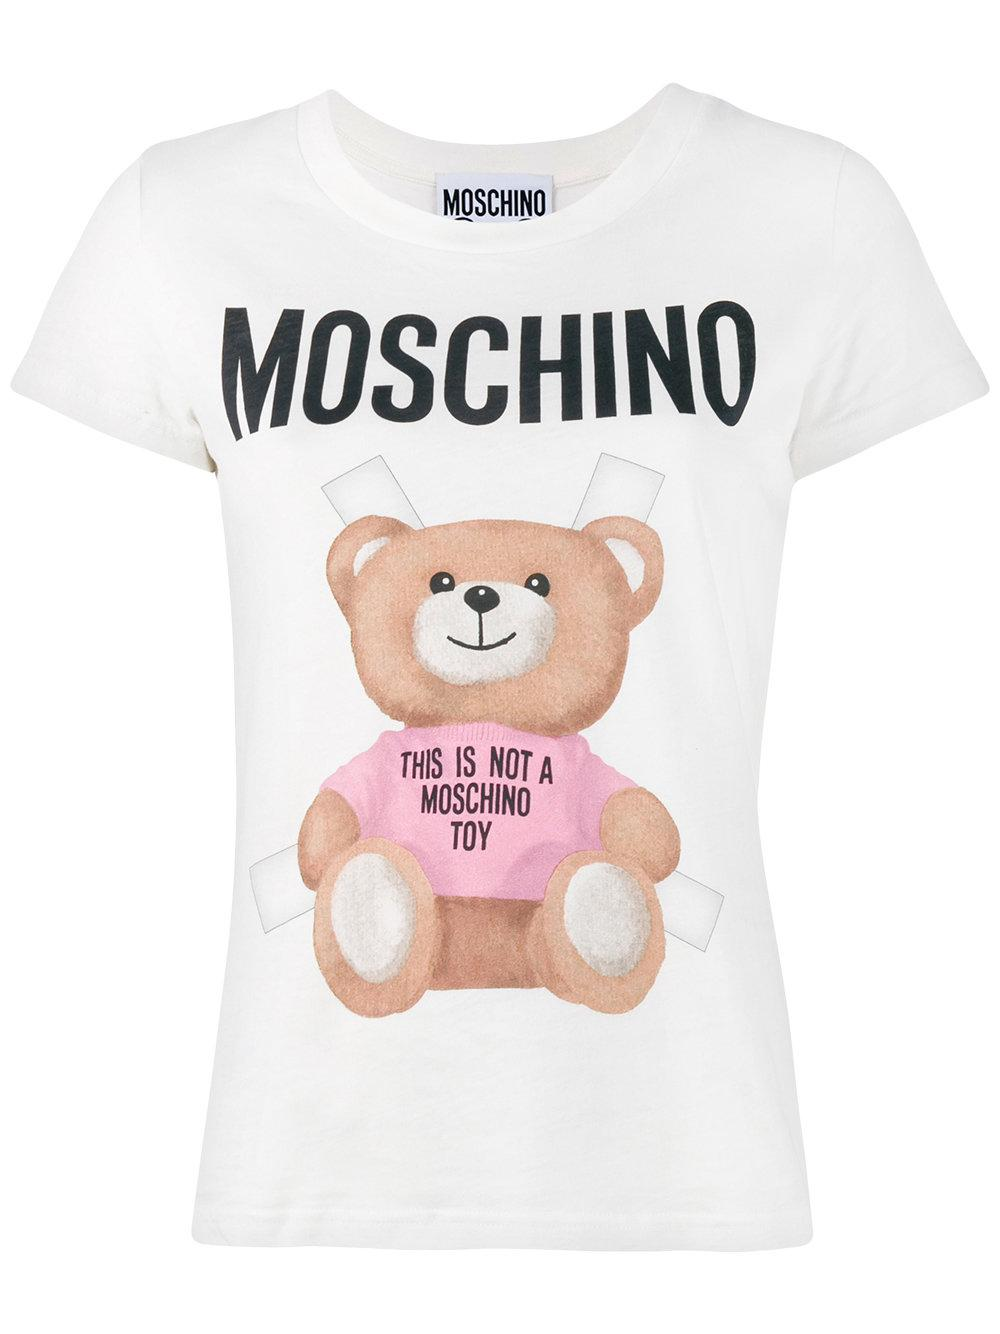 Moschino Teddy Logo T-shirt in White | Lyst